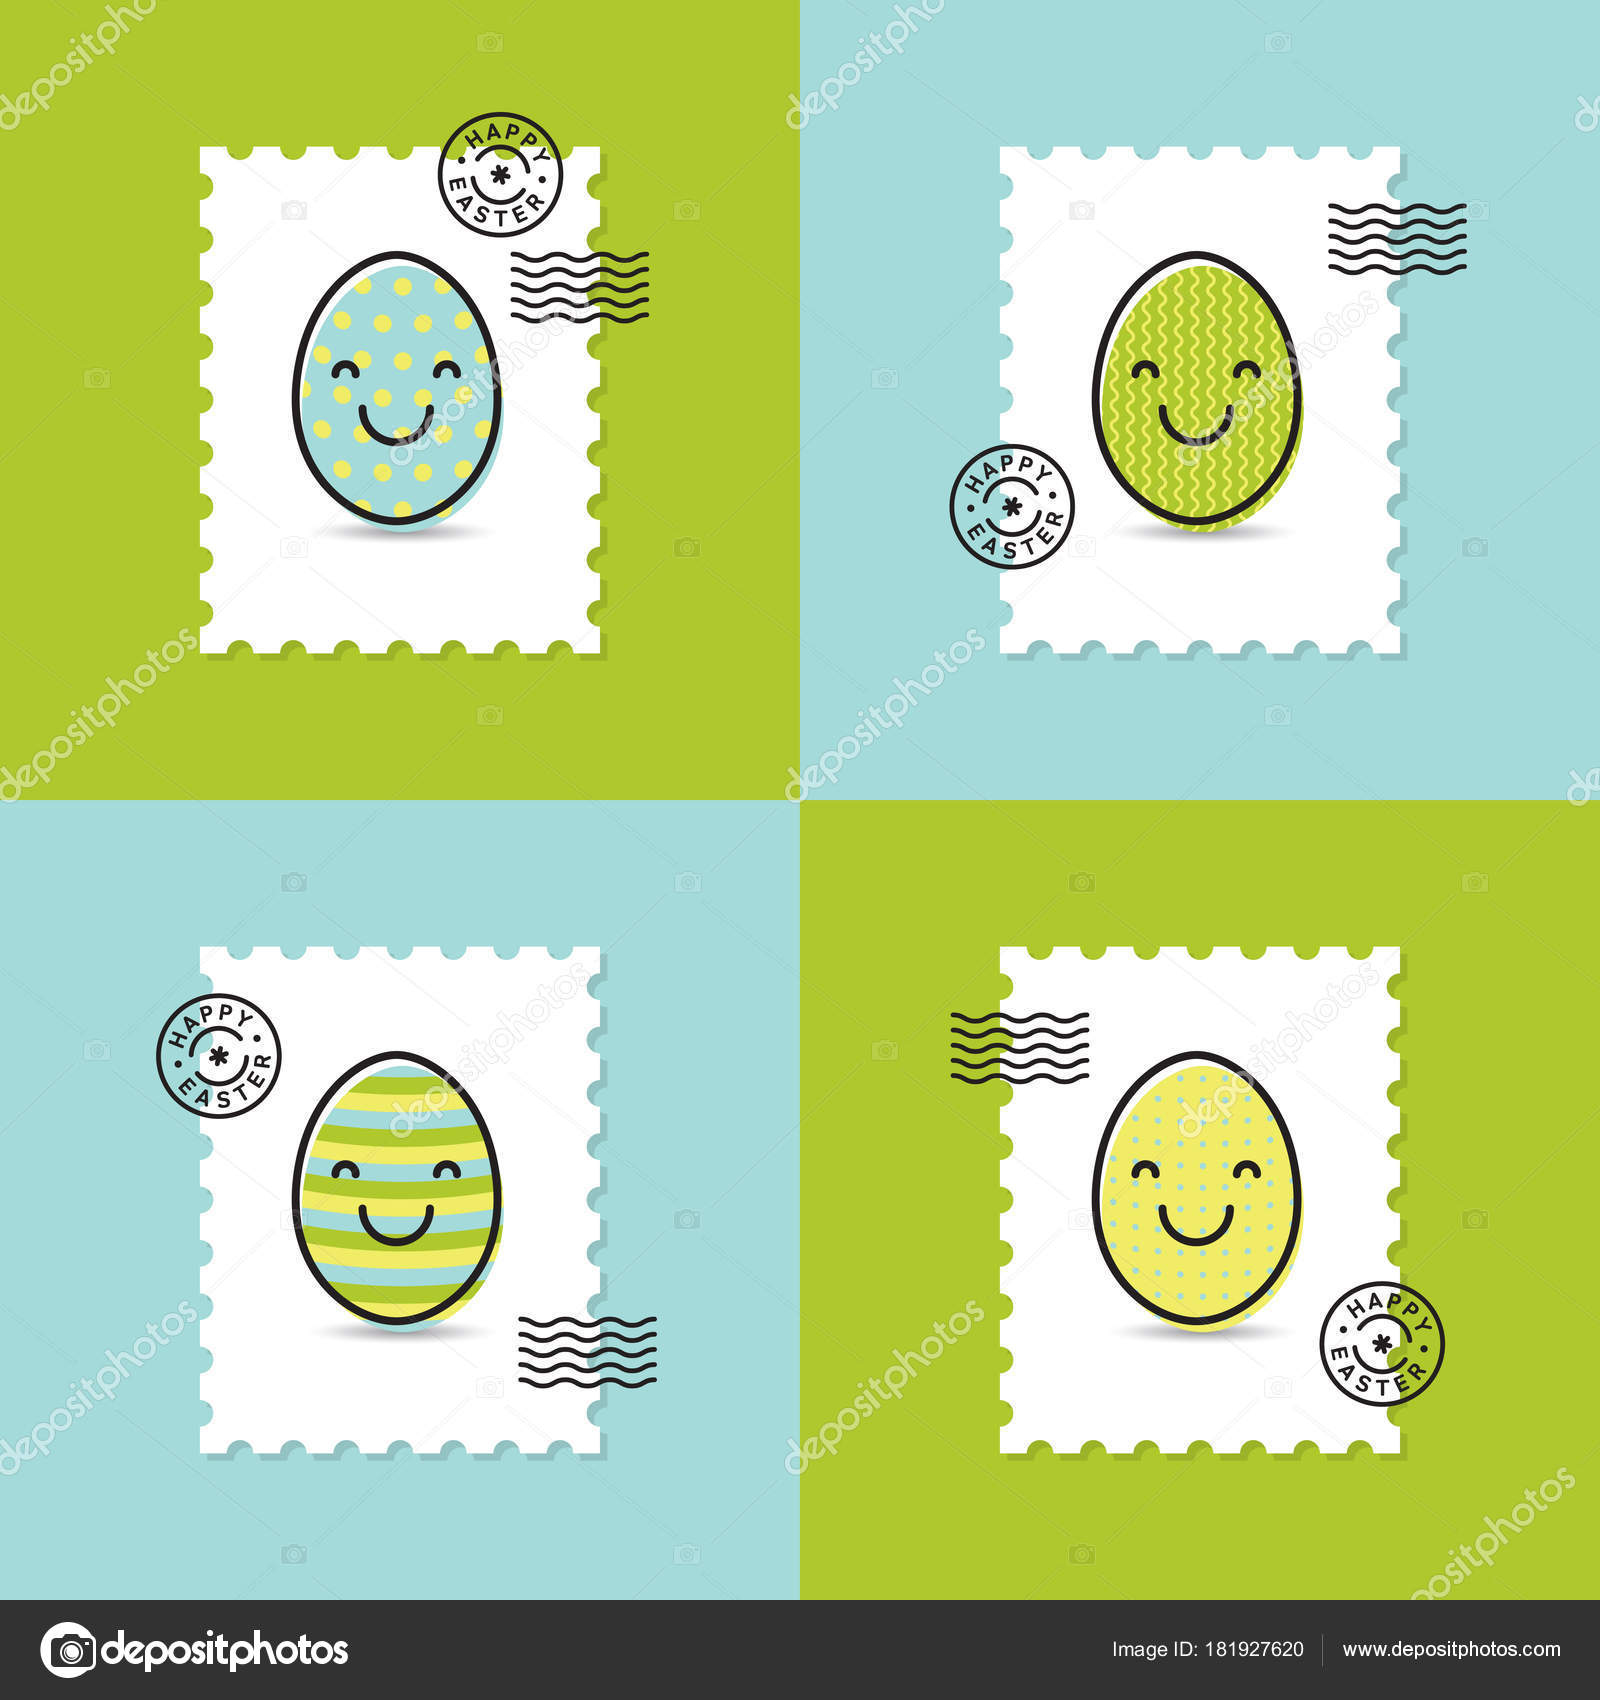 Set Postage Stamp Easter Painted Egg Smiley Happy Easter Greeting